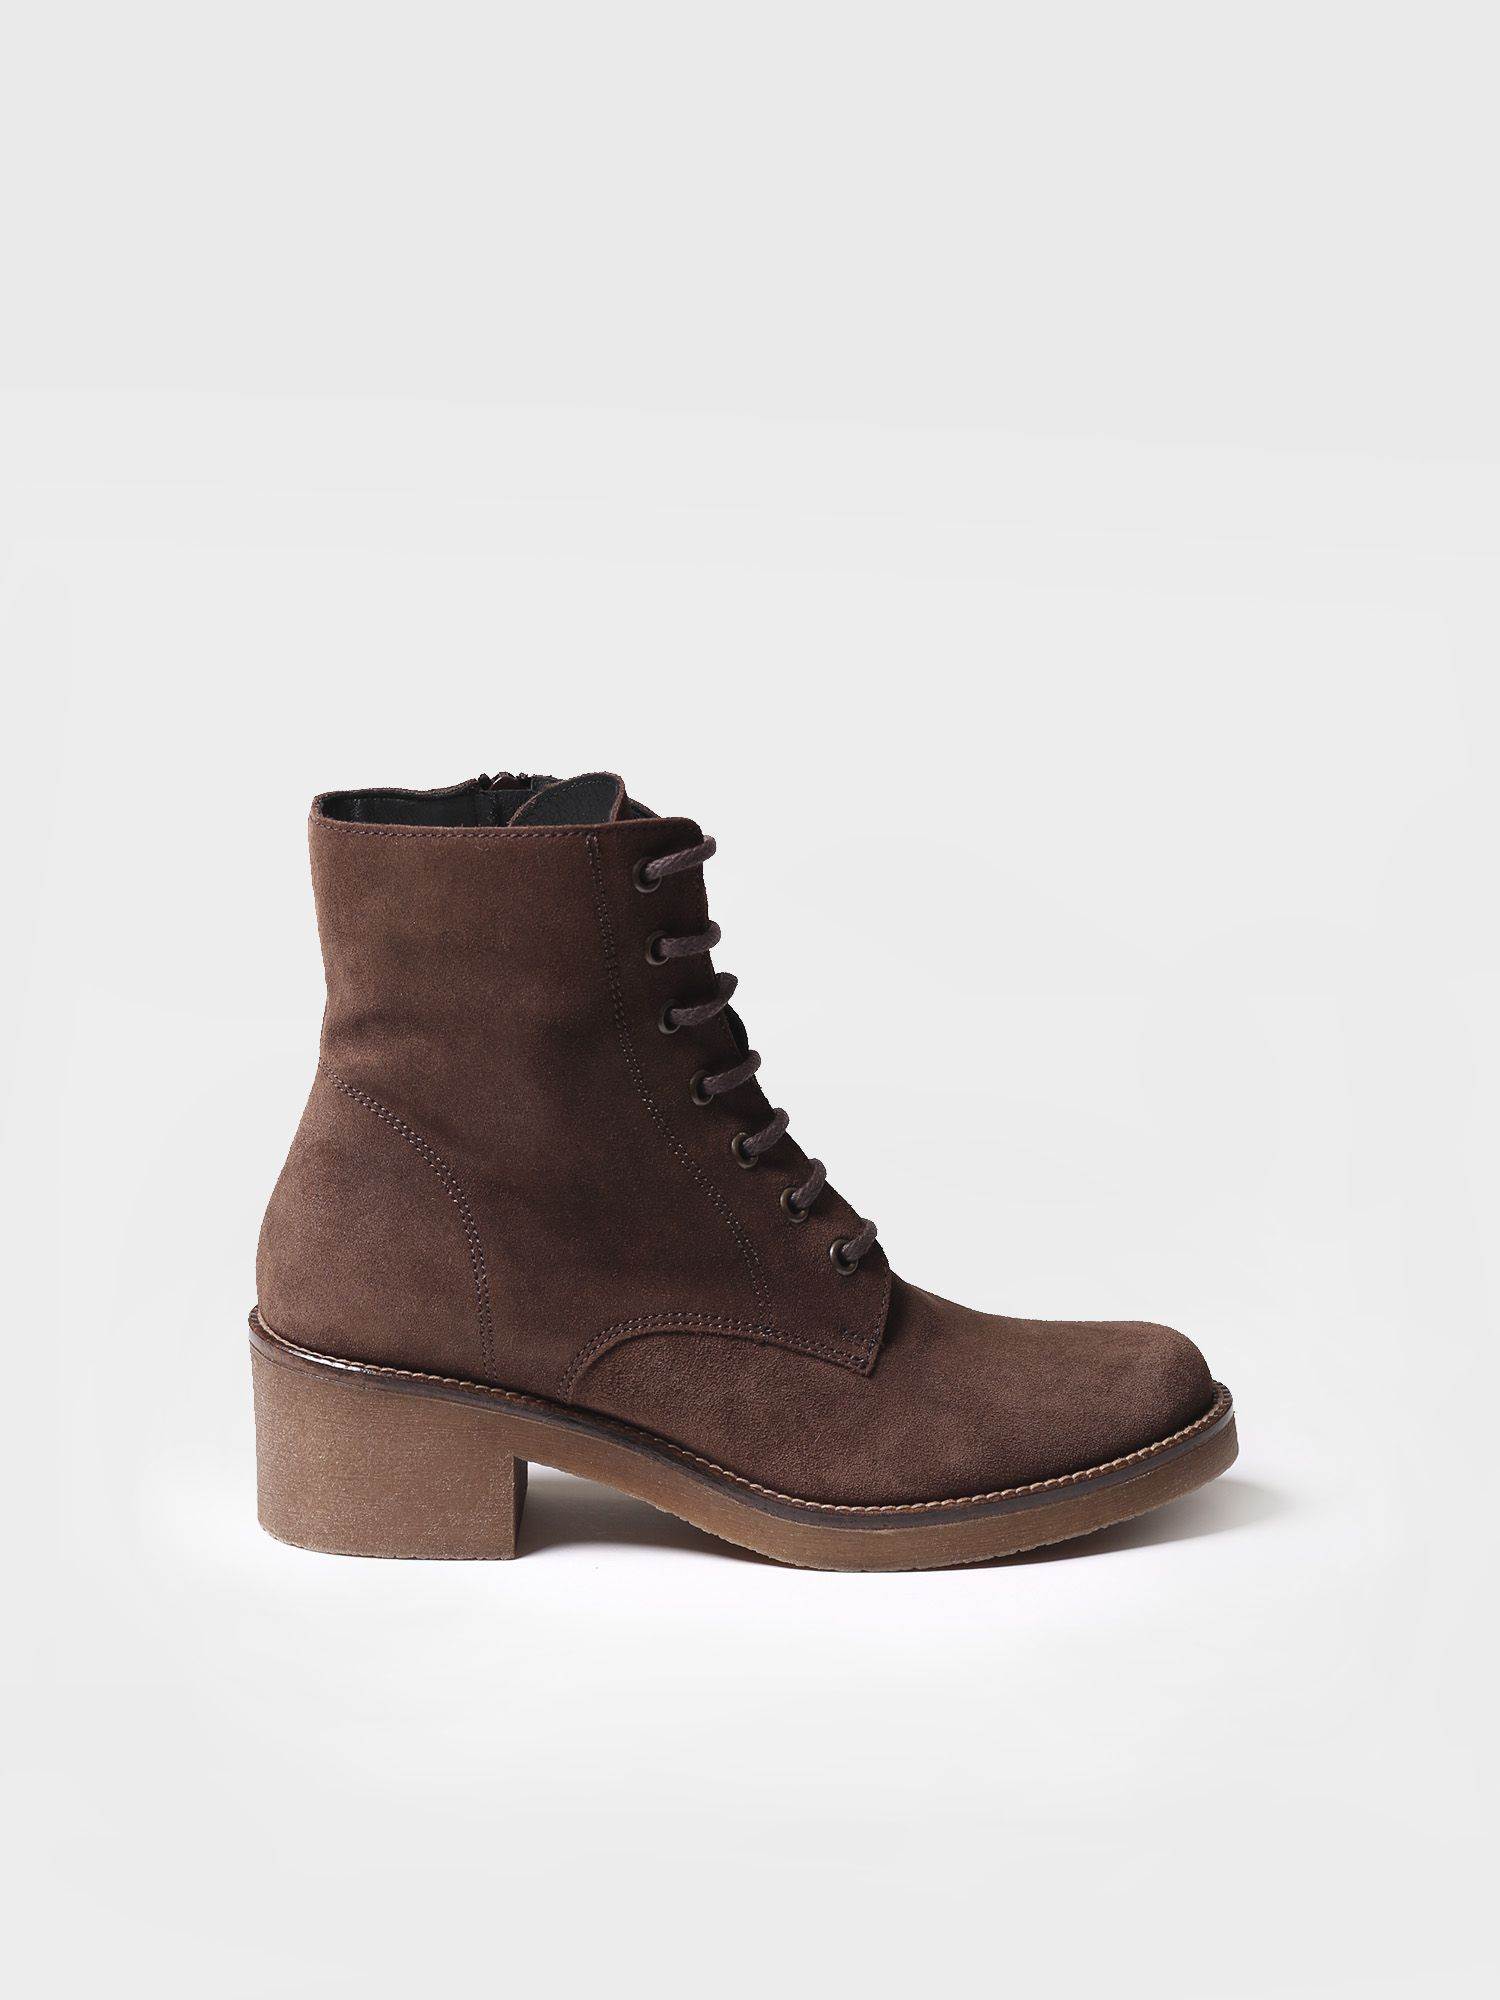 Woman ankle boot made of suede - PAVIA-SY